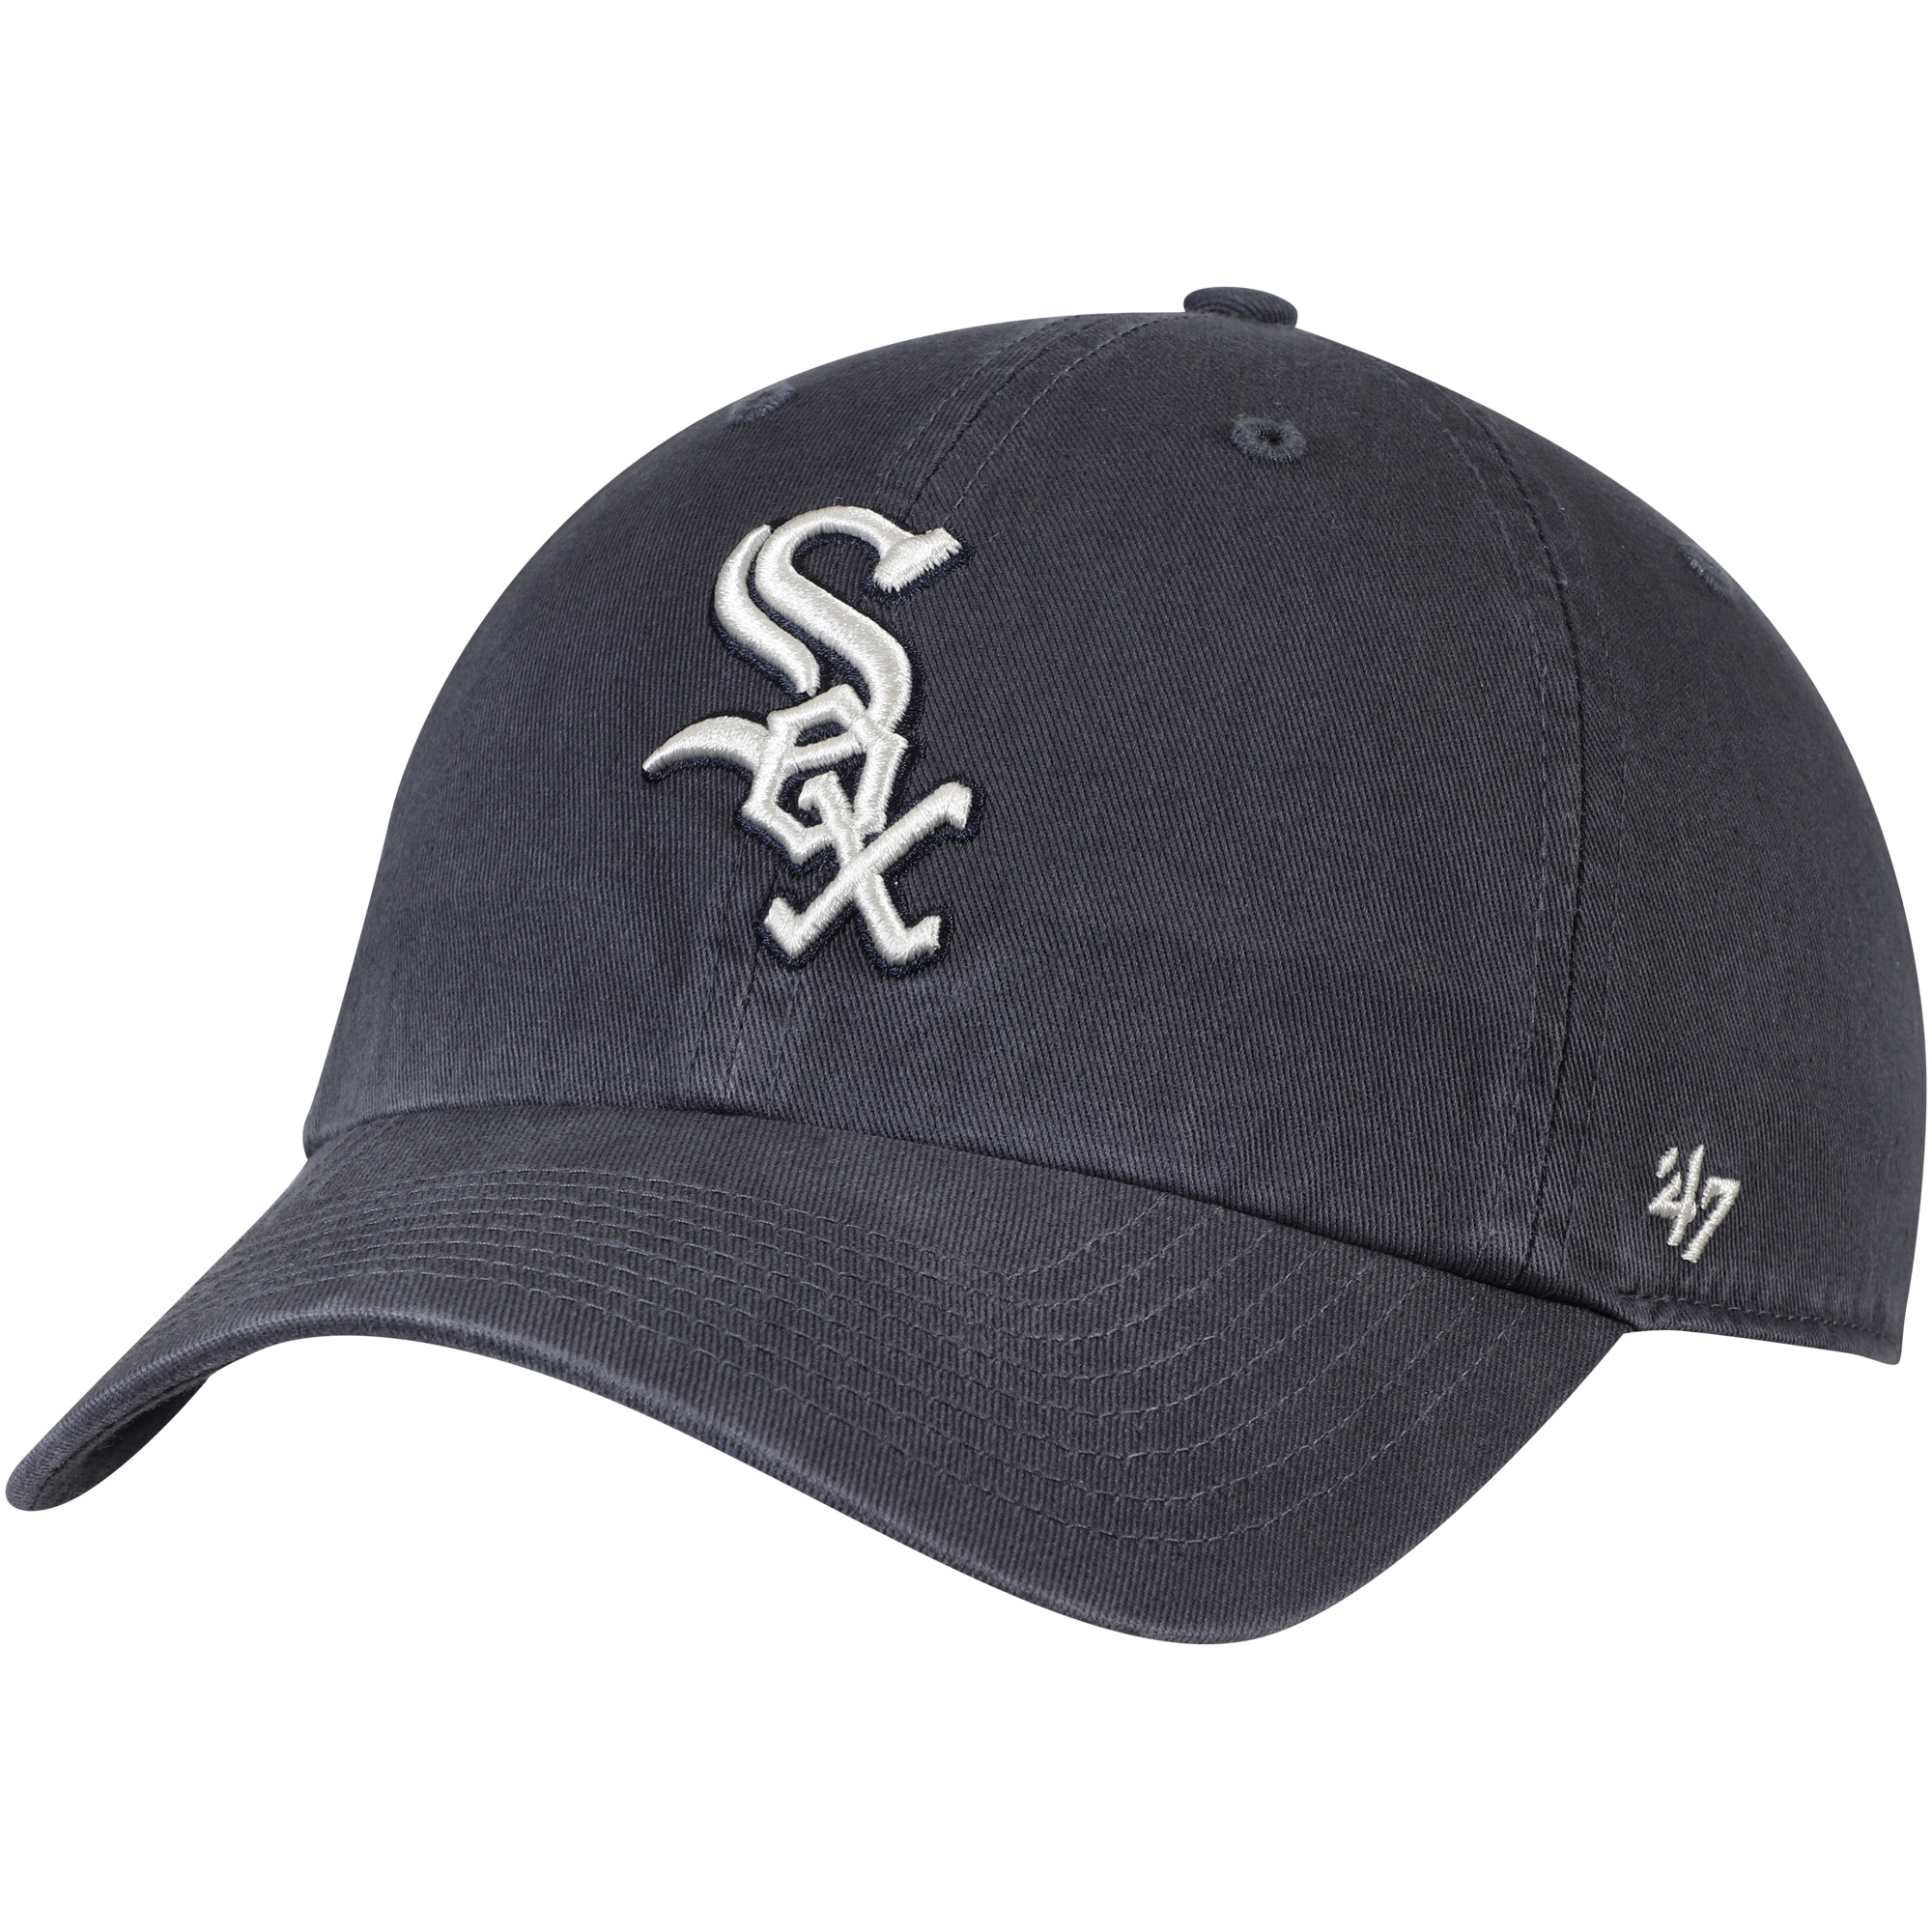 Chicago White Sox '47 Vintage Clean Up Adjustable Hat - Gray - OSFA